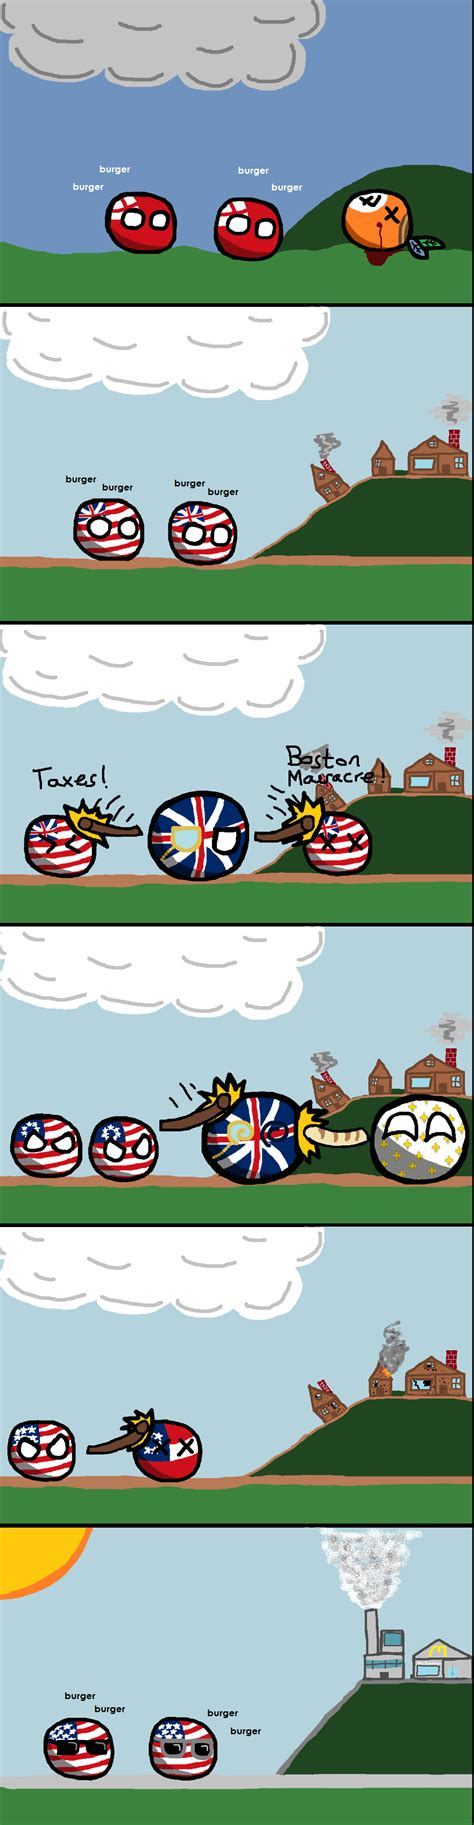 New Mexico State House a brief history of the united states polandball